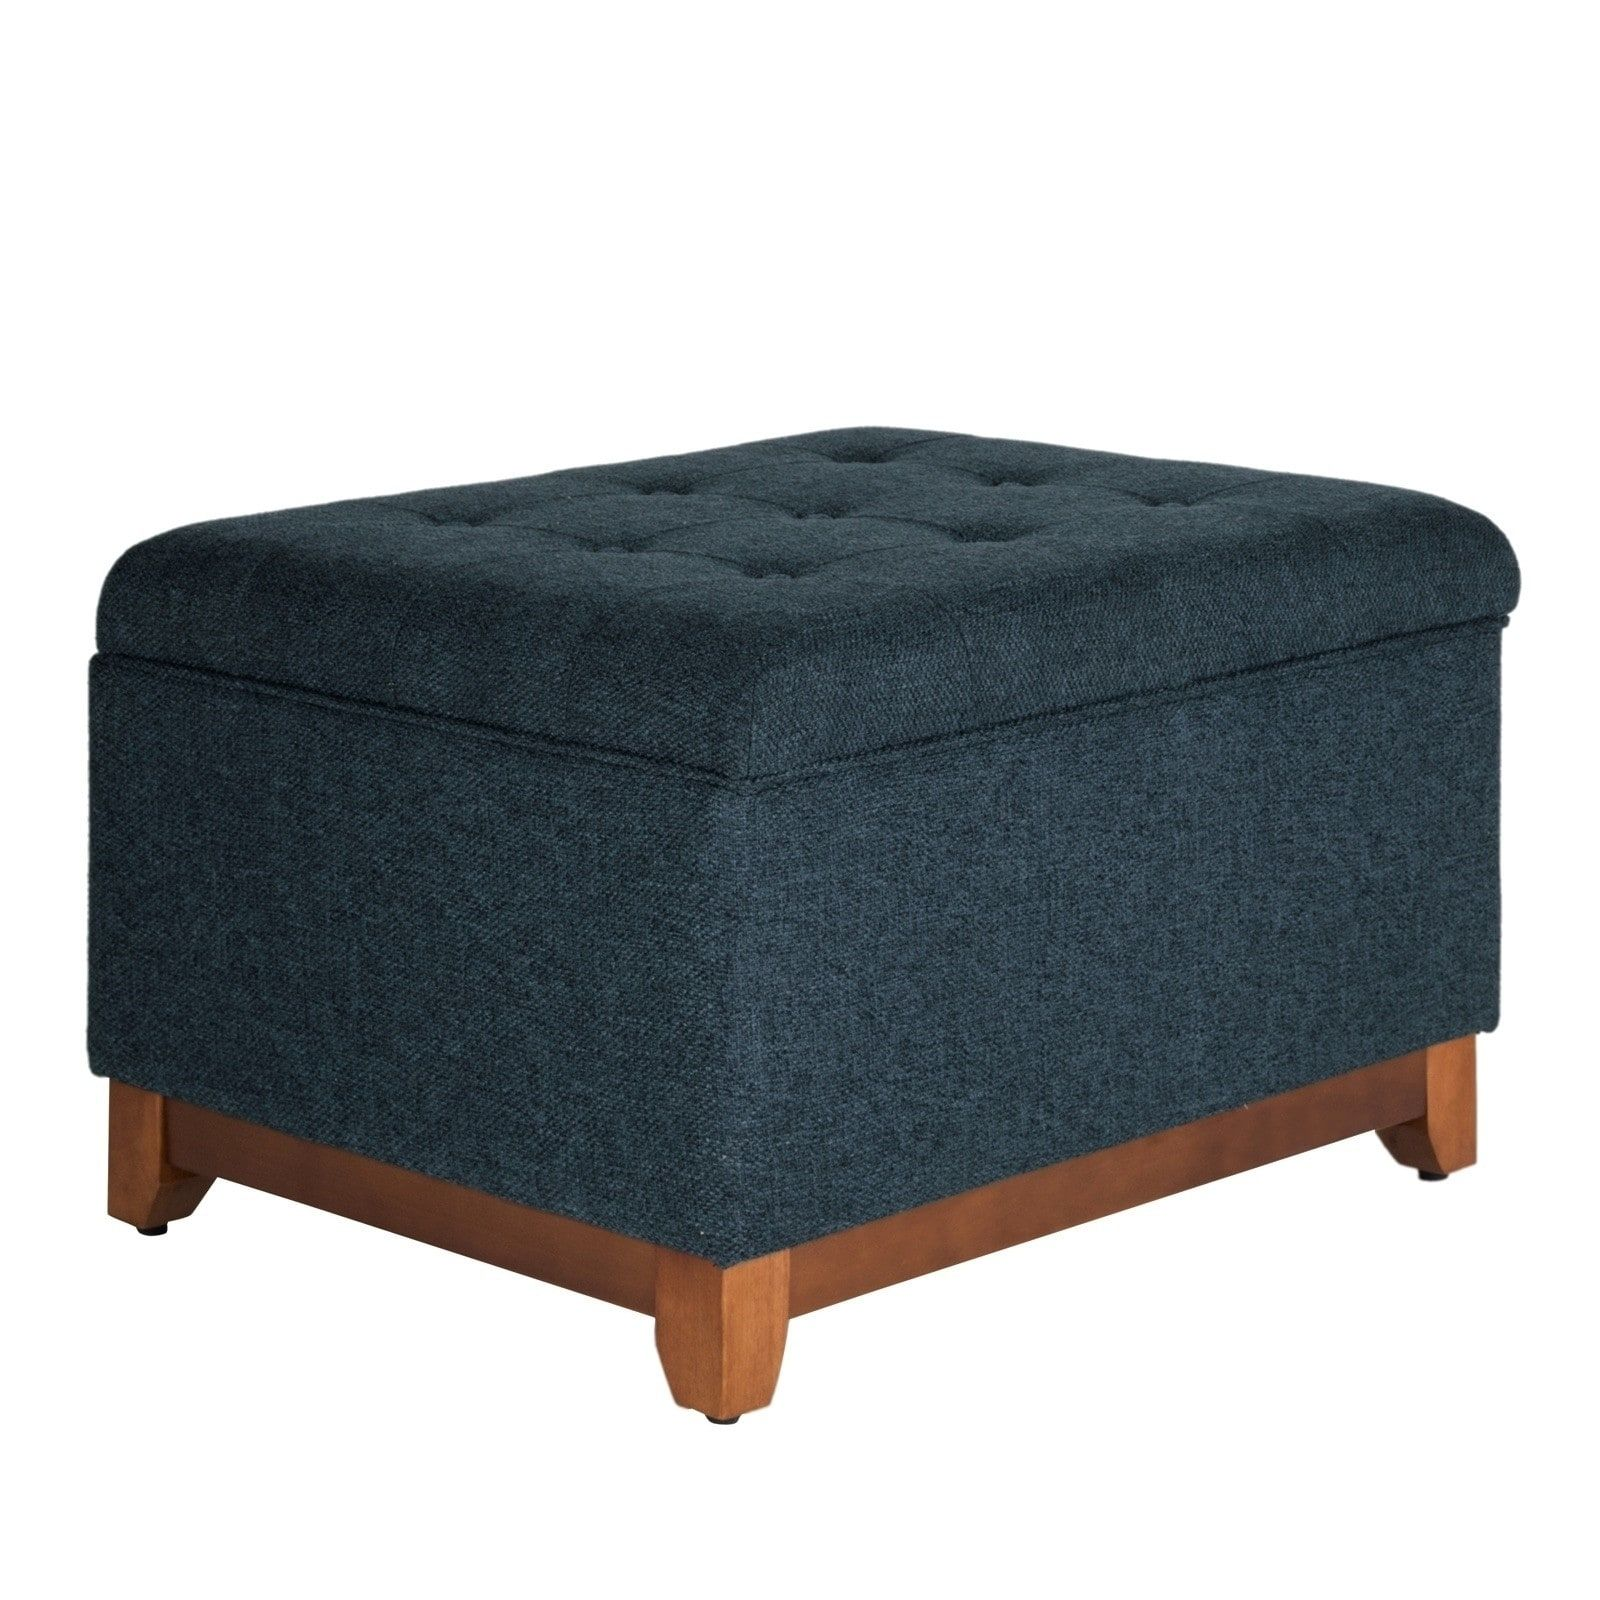 Excellent Textured Fabric Upholstered Wooden Ottoman With Button Caraccident5 Cool Chair Designs And Ideas Caraccident5Info